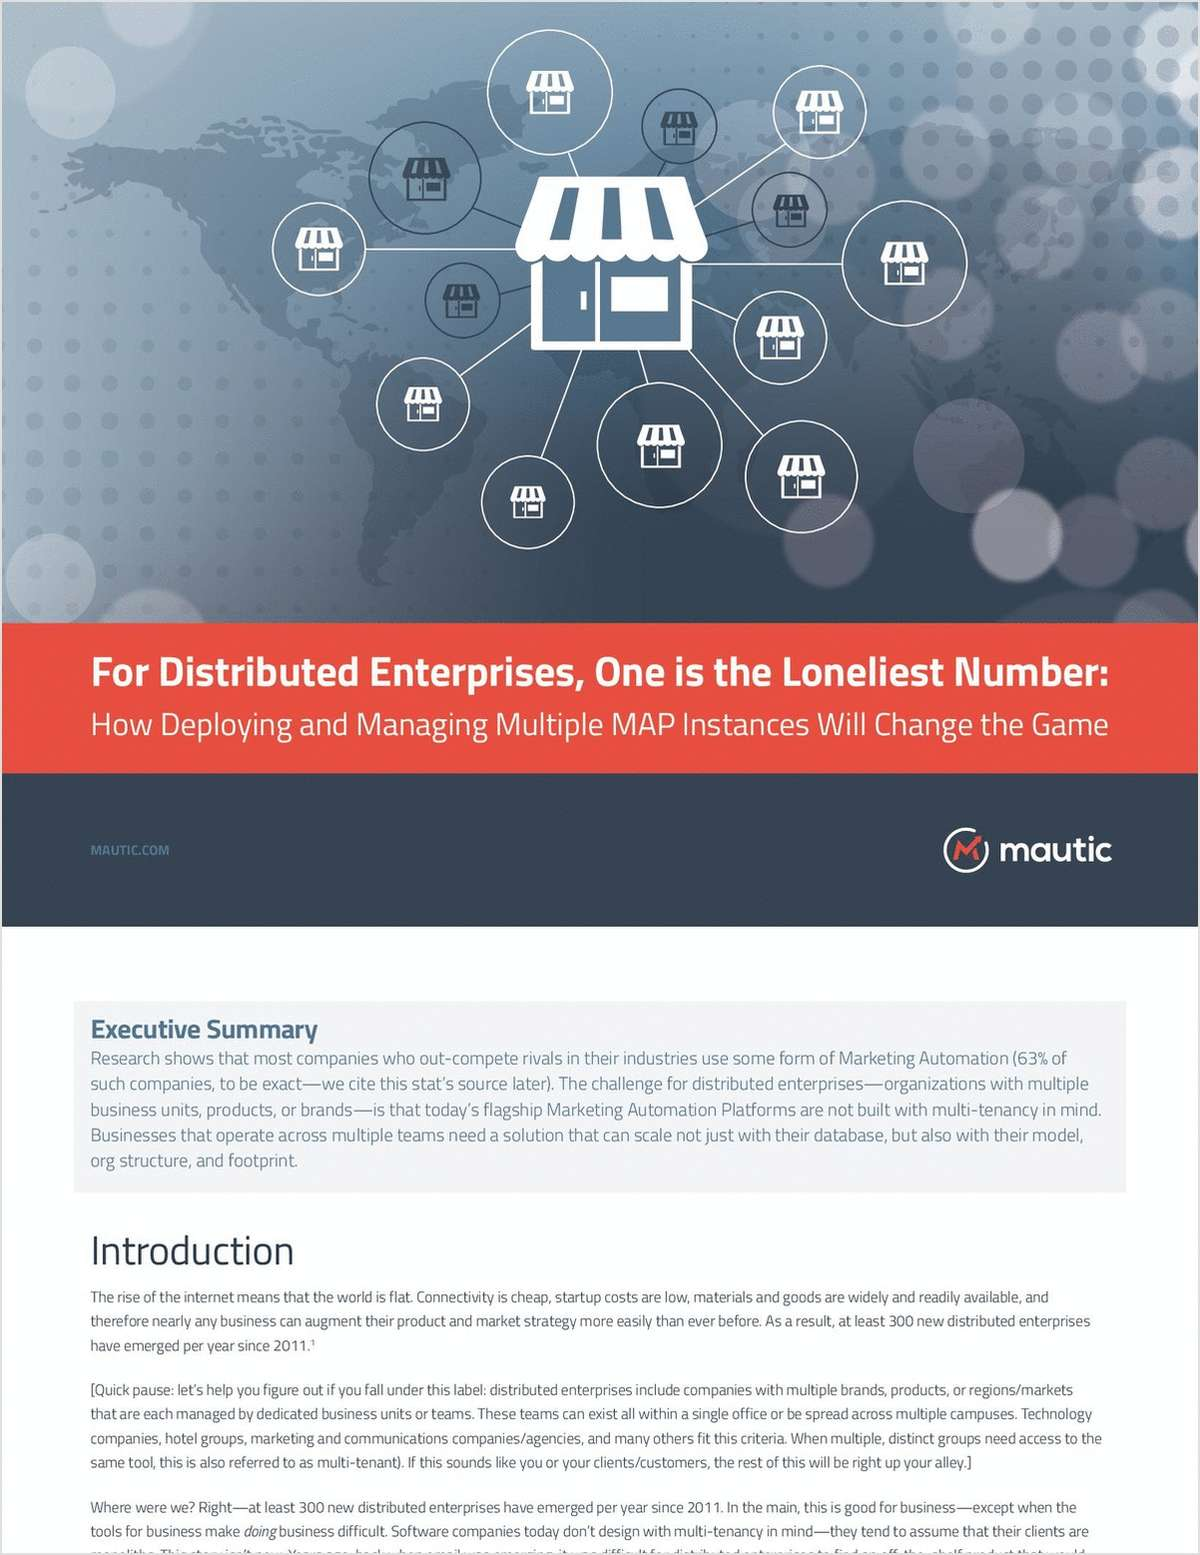 One is the Loneliest Number: How Deploying and Managing Multiple MAPs Will Change the Game for Distributed Enterprises